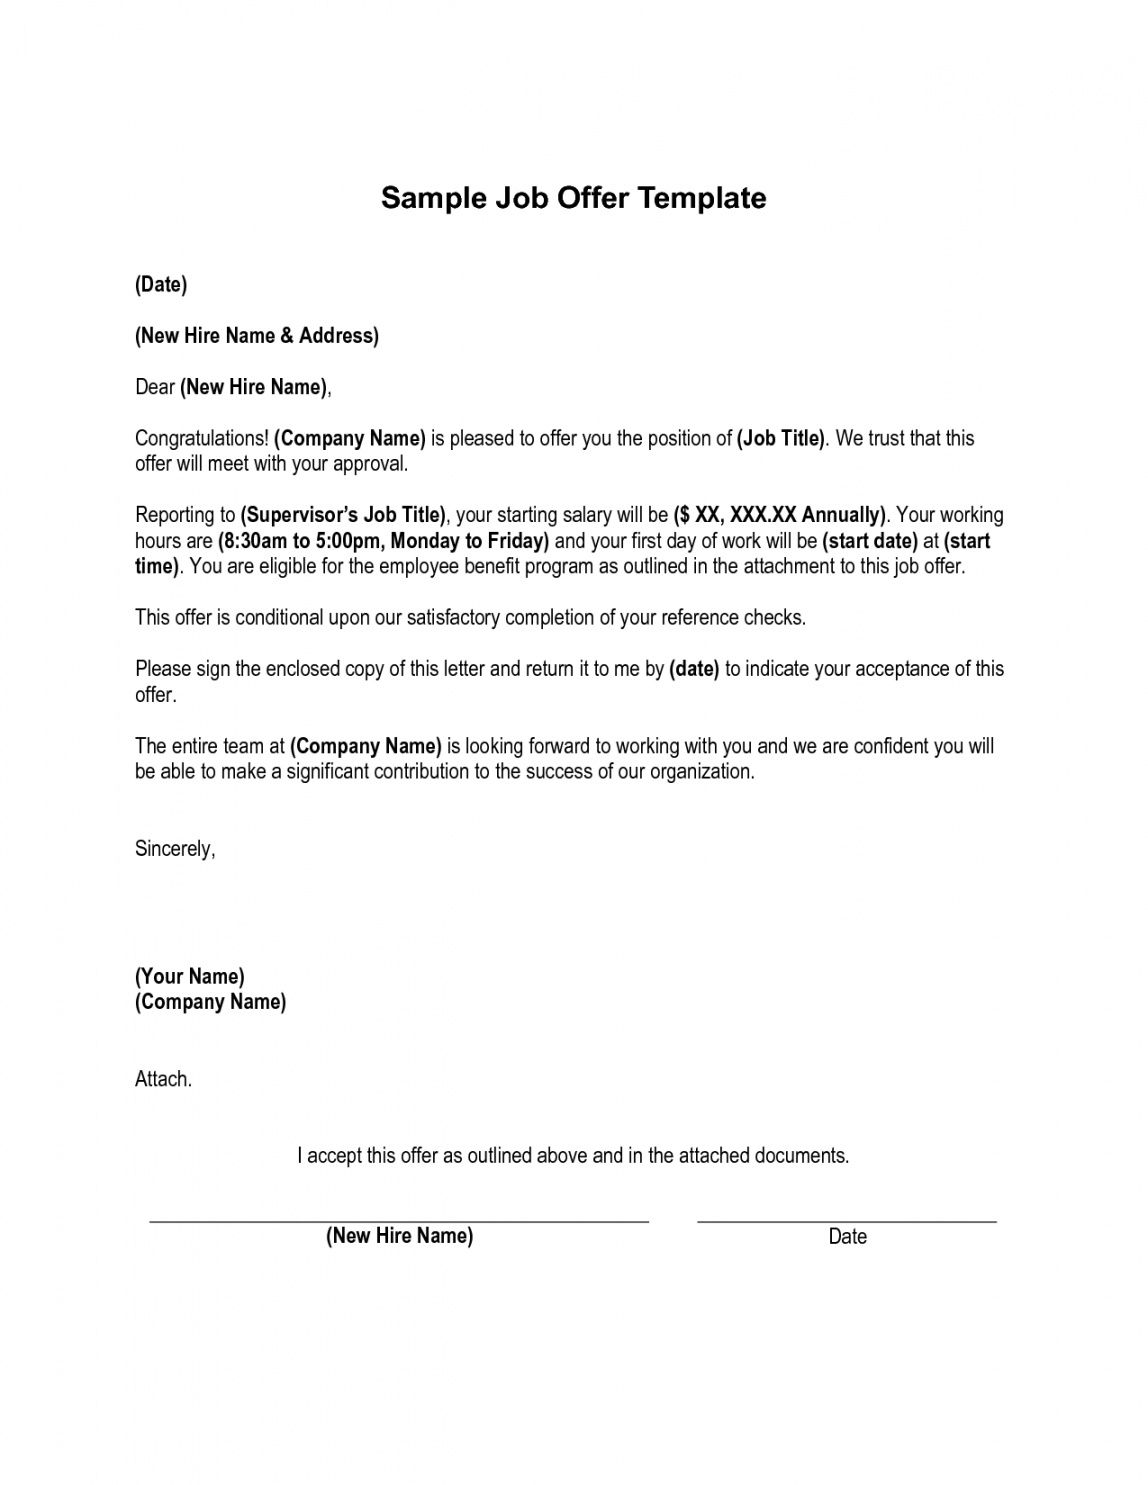 Free Job Offer Letter From Employer To Employee Planner Simple Job Offer Letter Template In 2021 Job Offer Letter Templates Business Letter Template Simple job offer letter template